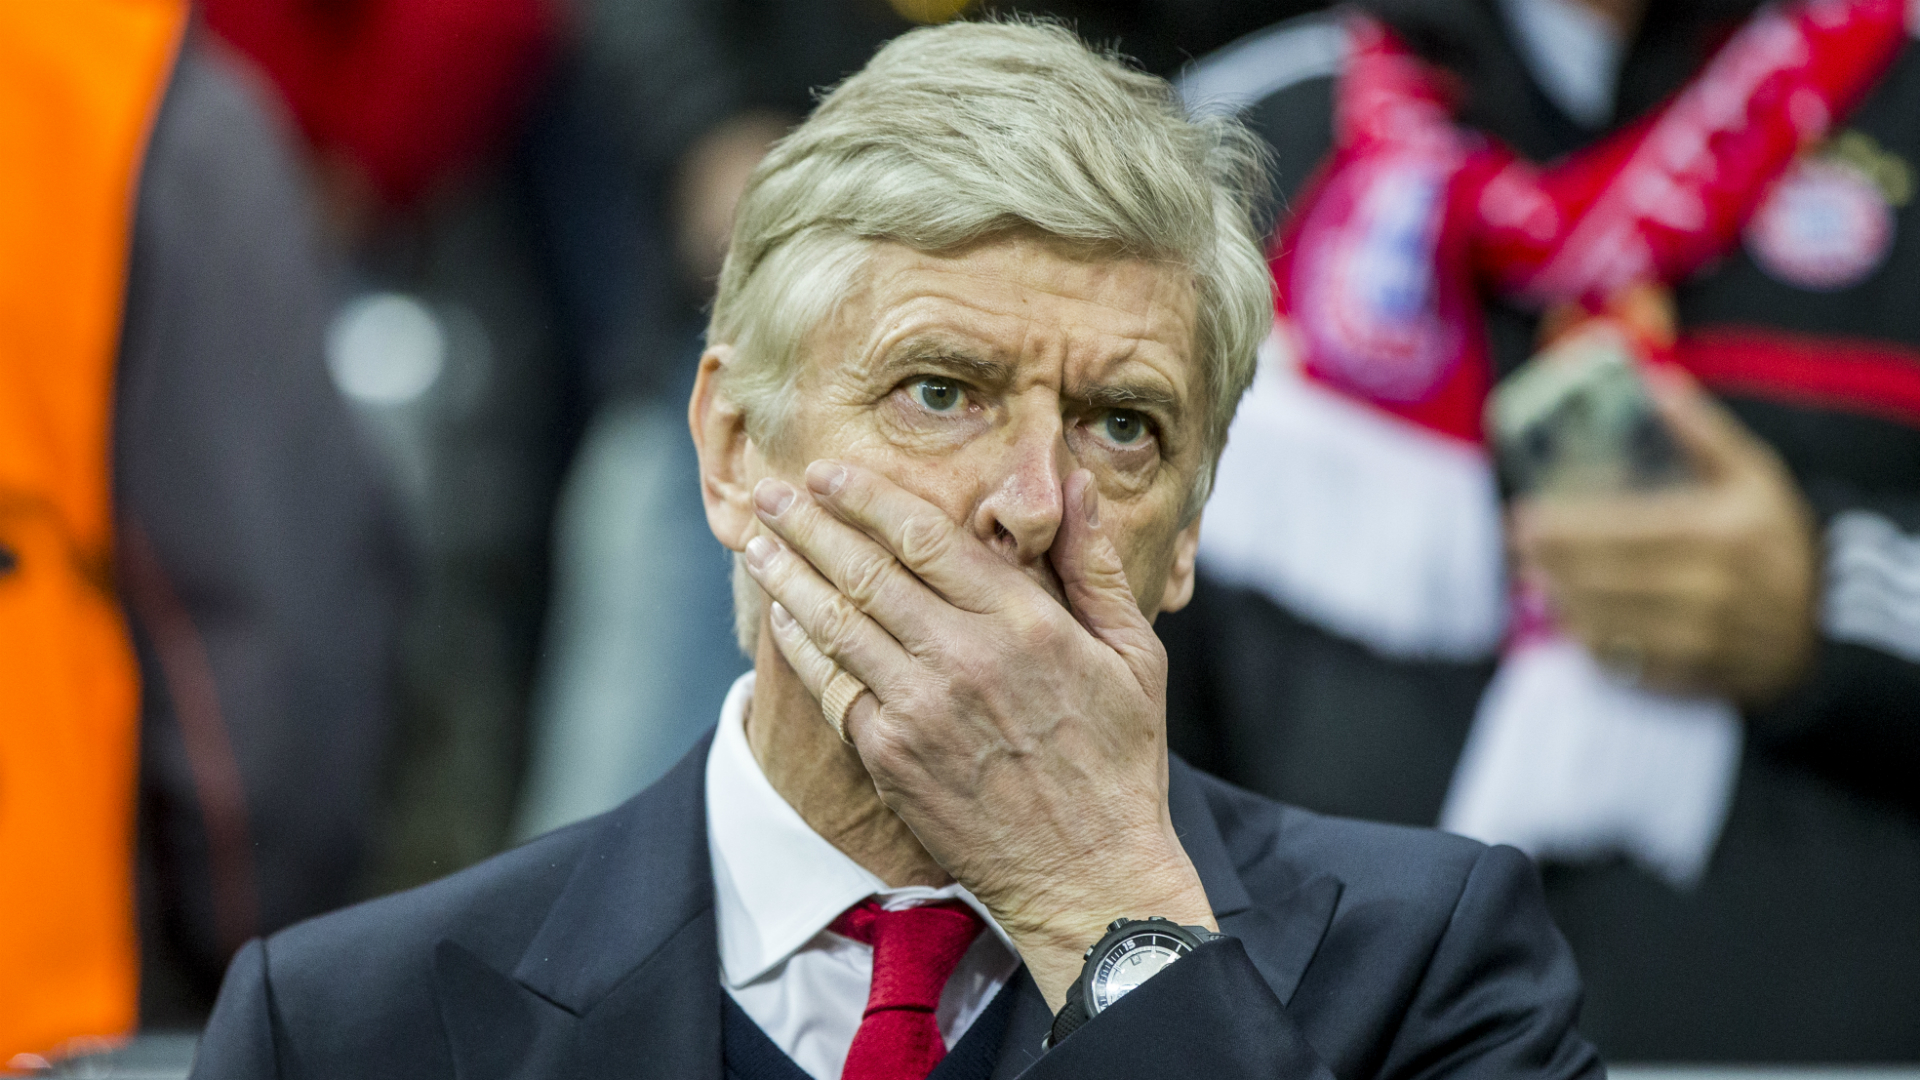 Arsene Wenger Future Uncertainty Is Hurting Arsenal - Ray Houghton